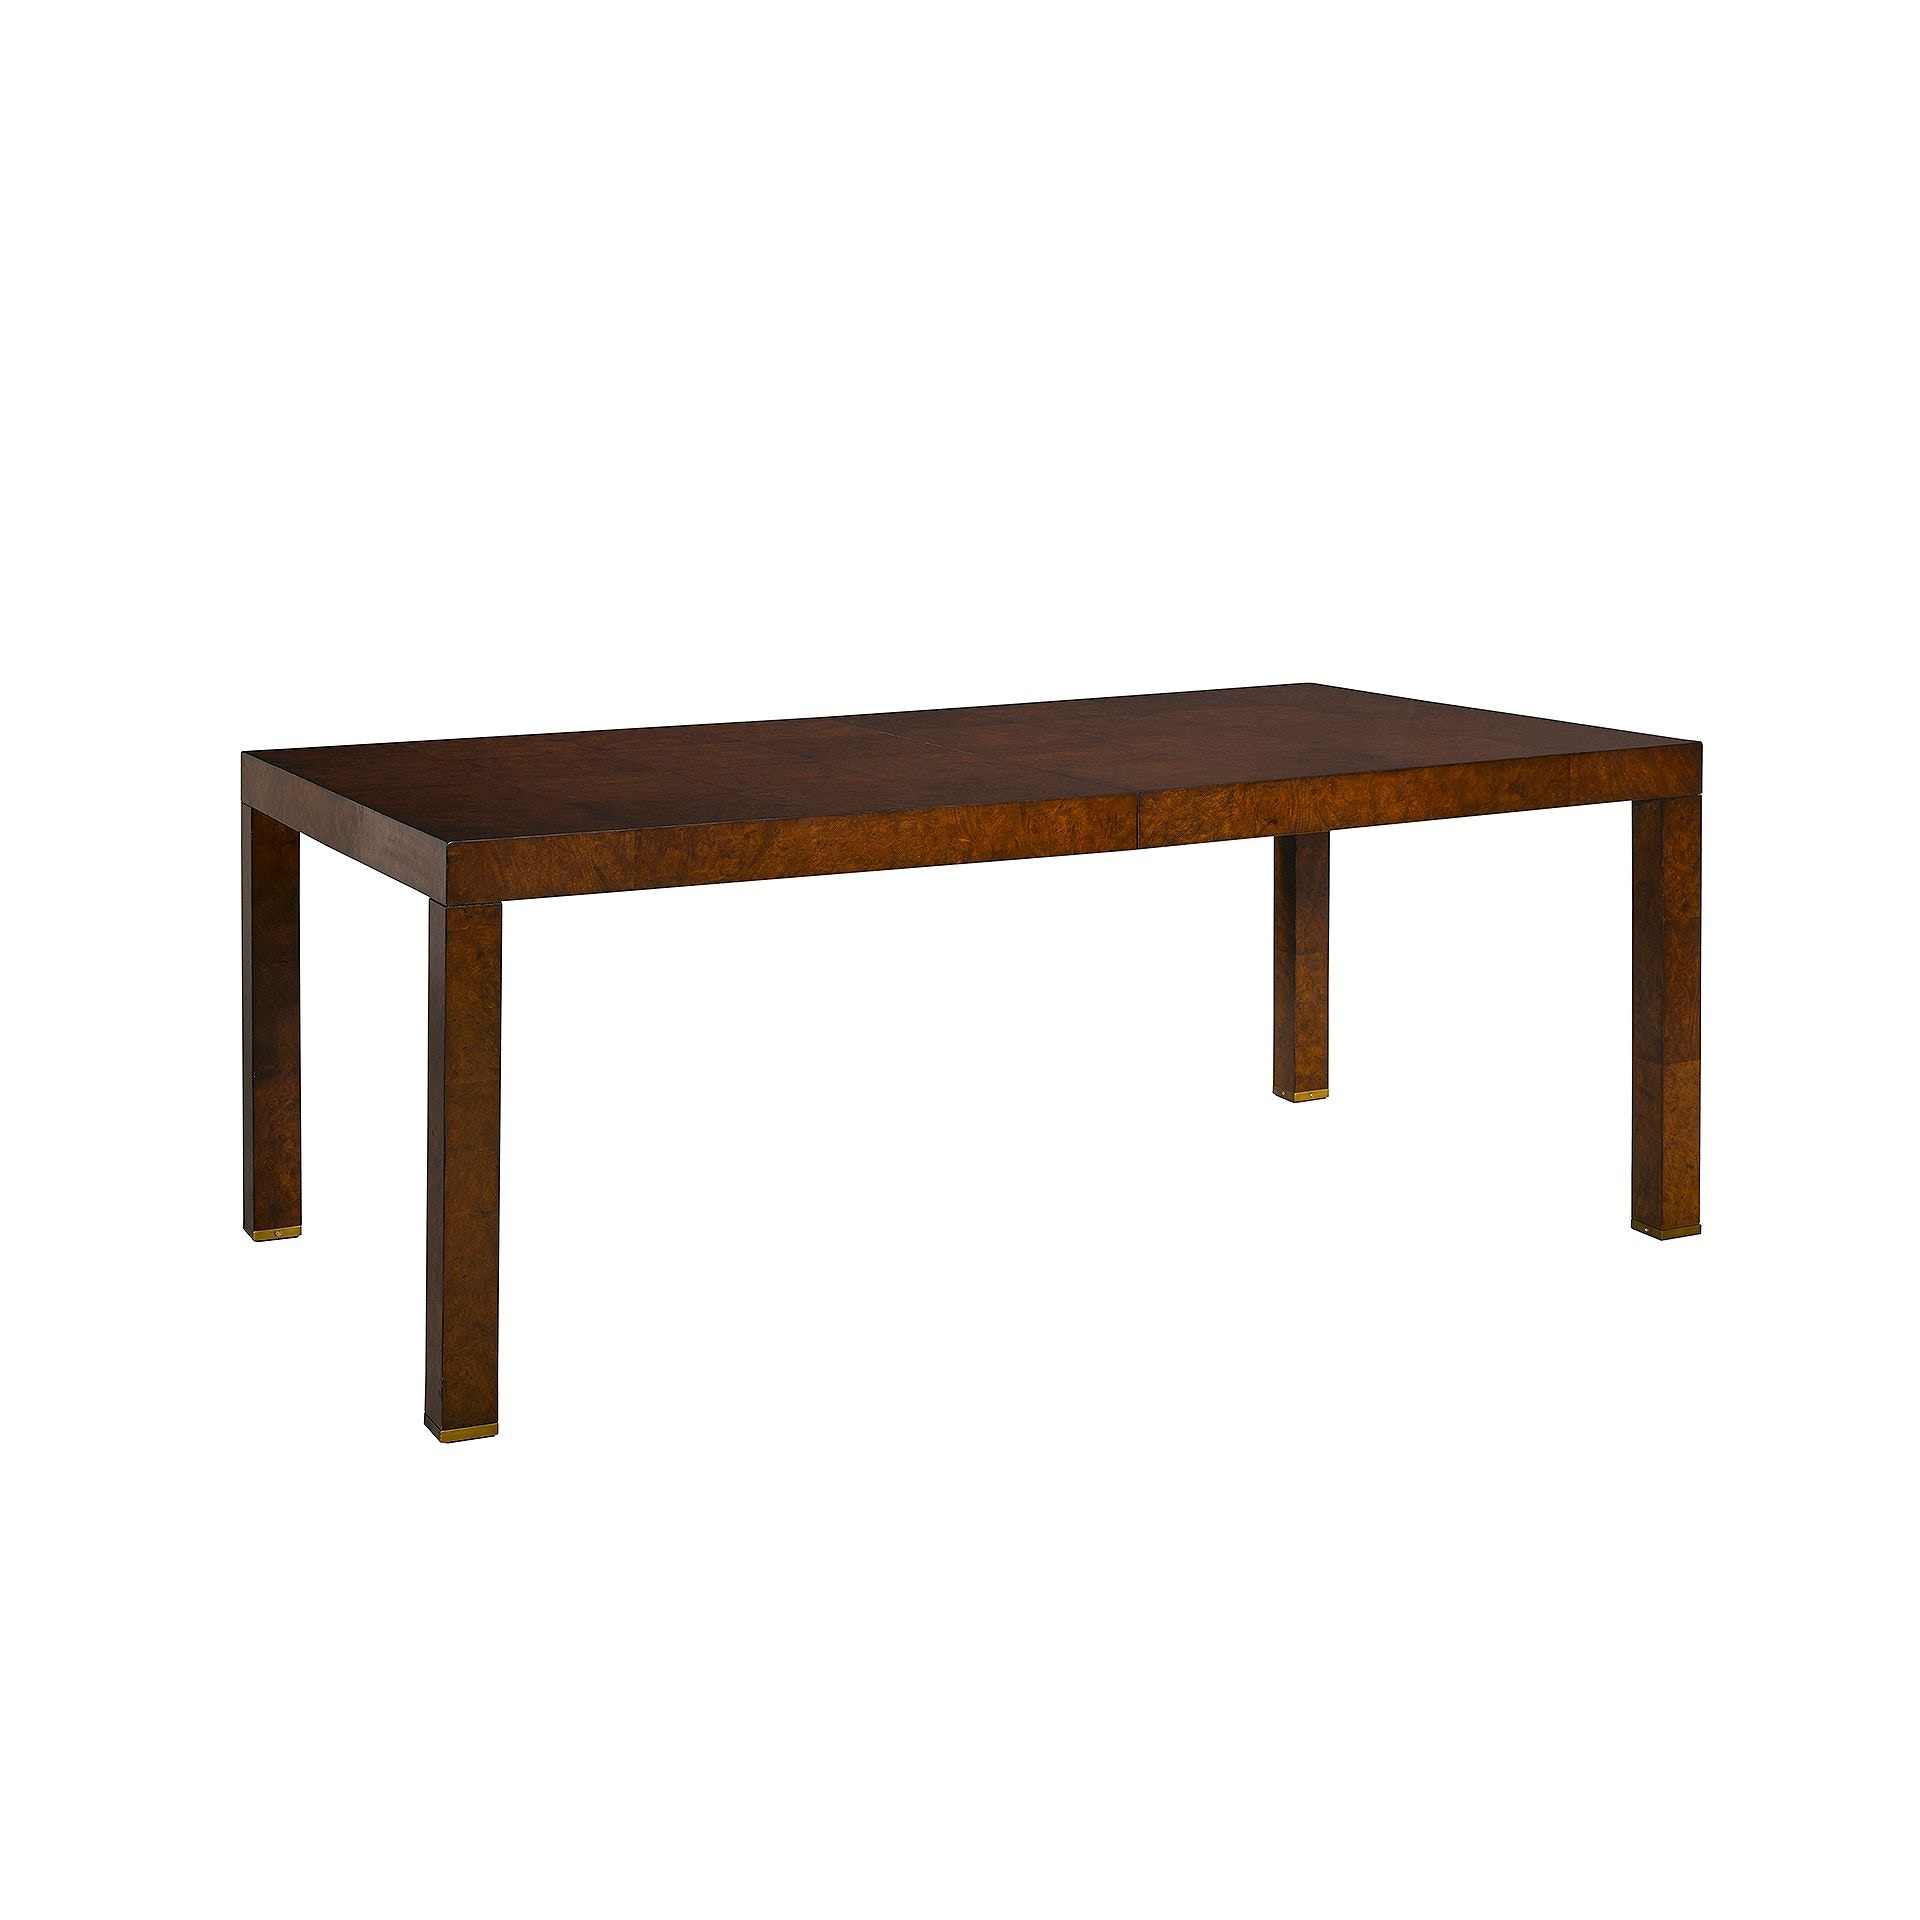 Exceptionnel Henredon Furniture Mark D. Sikes Bel Air Parsons Dining Table 2401 20 806